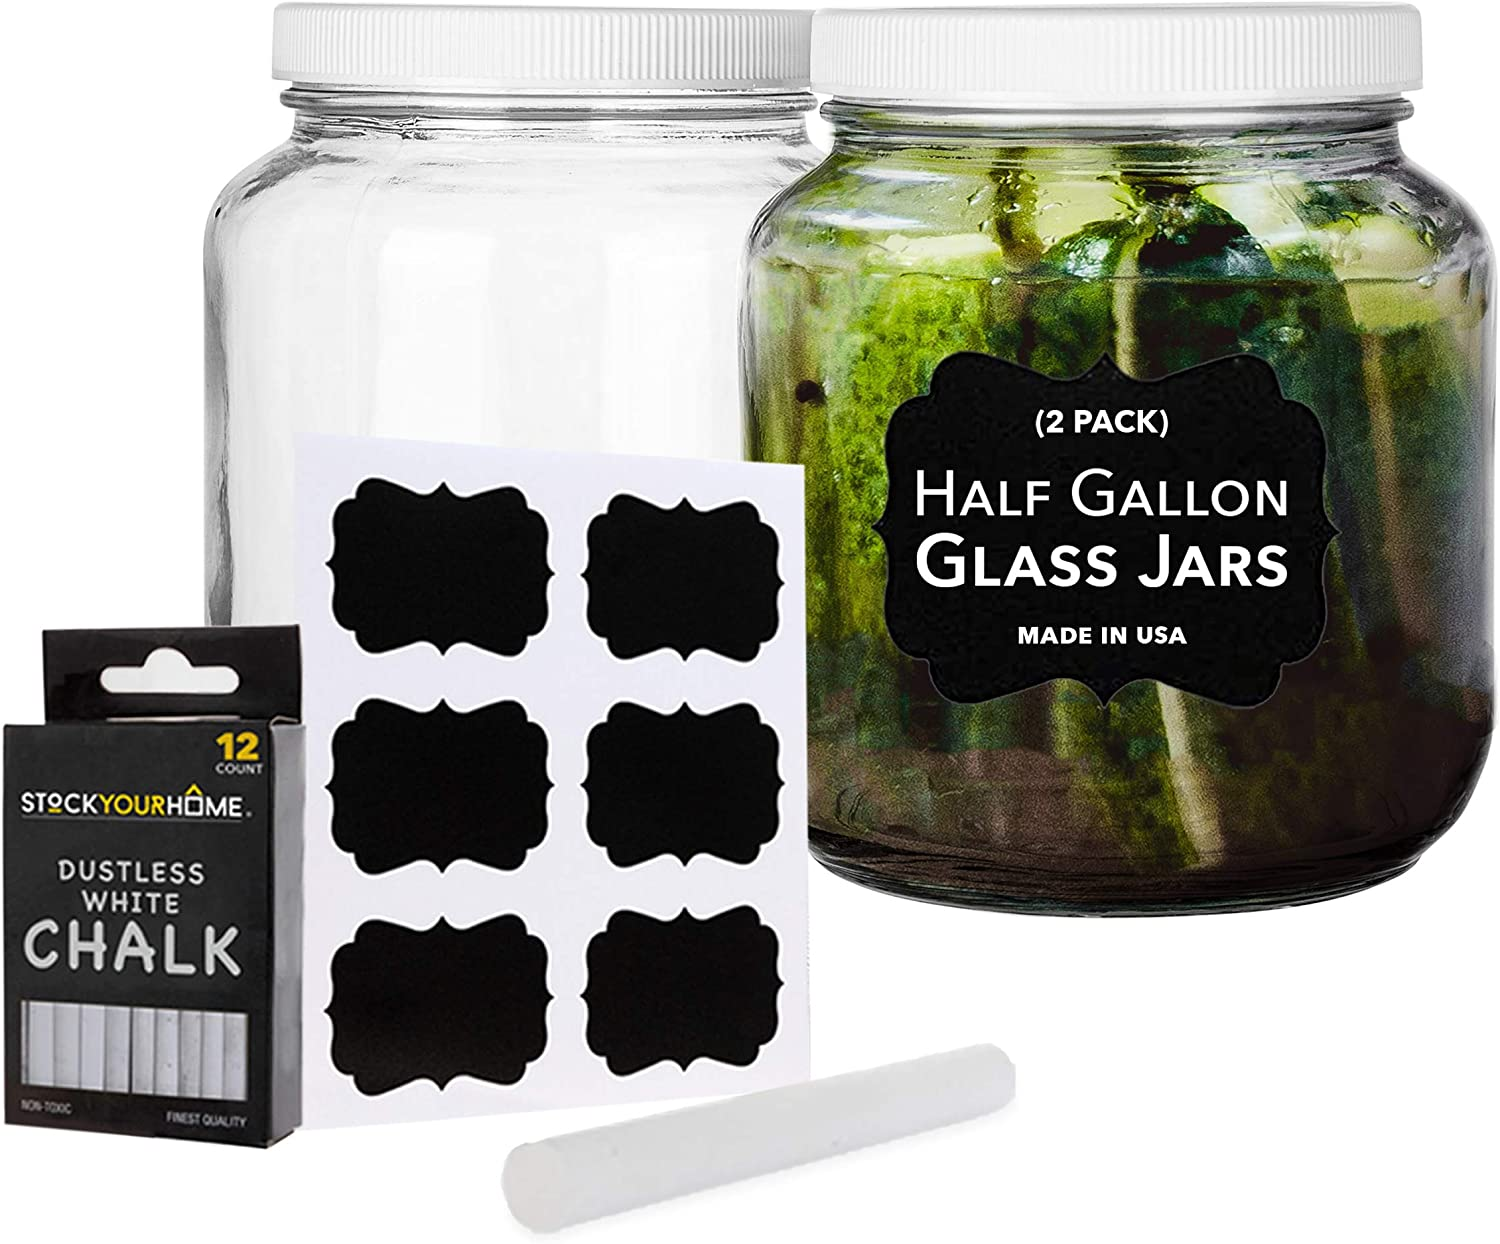 64 Oz Glass Jar with Plastic Airtight Lid (2 Pack) - Includes 6 Chalkboard Labels & 12 Pieces of Dustless Chalk - Half Gallon Glass Jar for pickling, fermentation, brewing, food storage